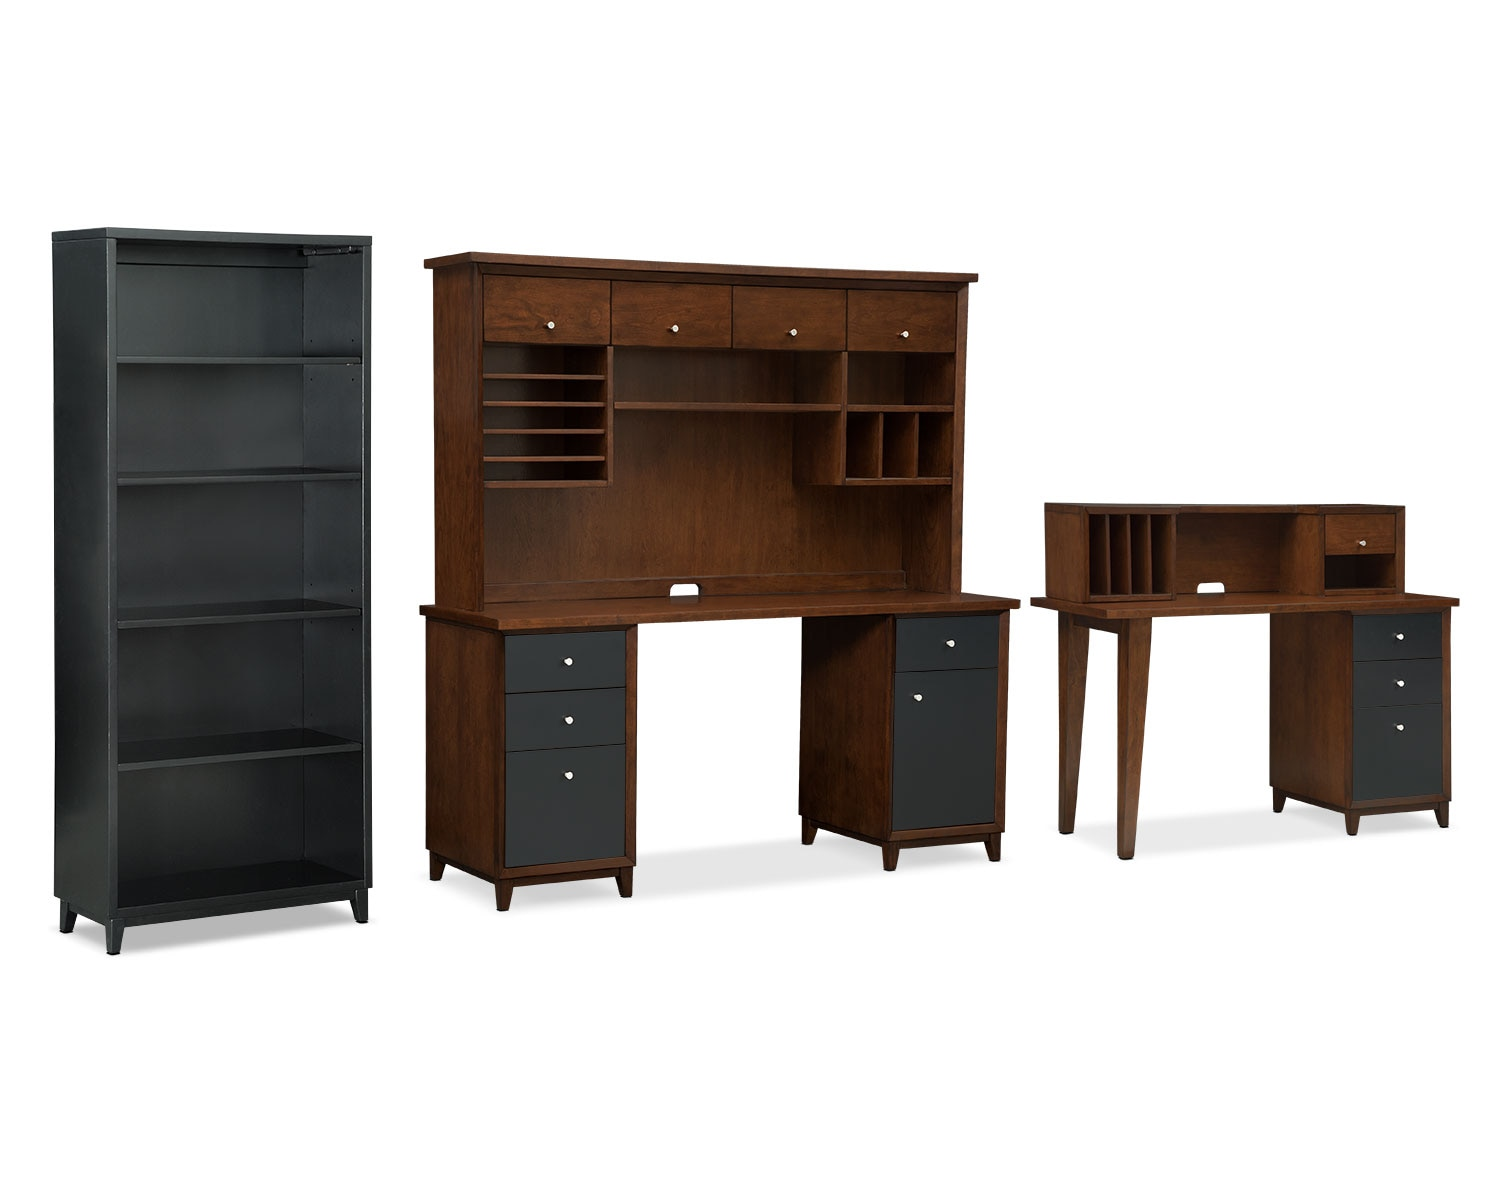 The Oslo Black Home Office Collection